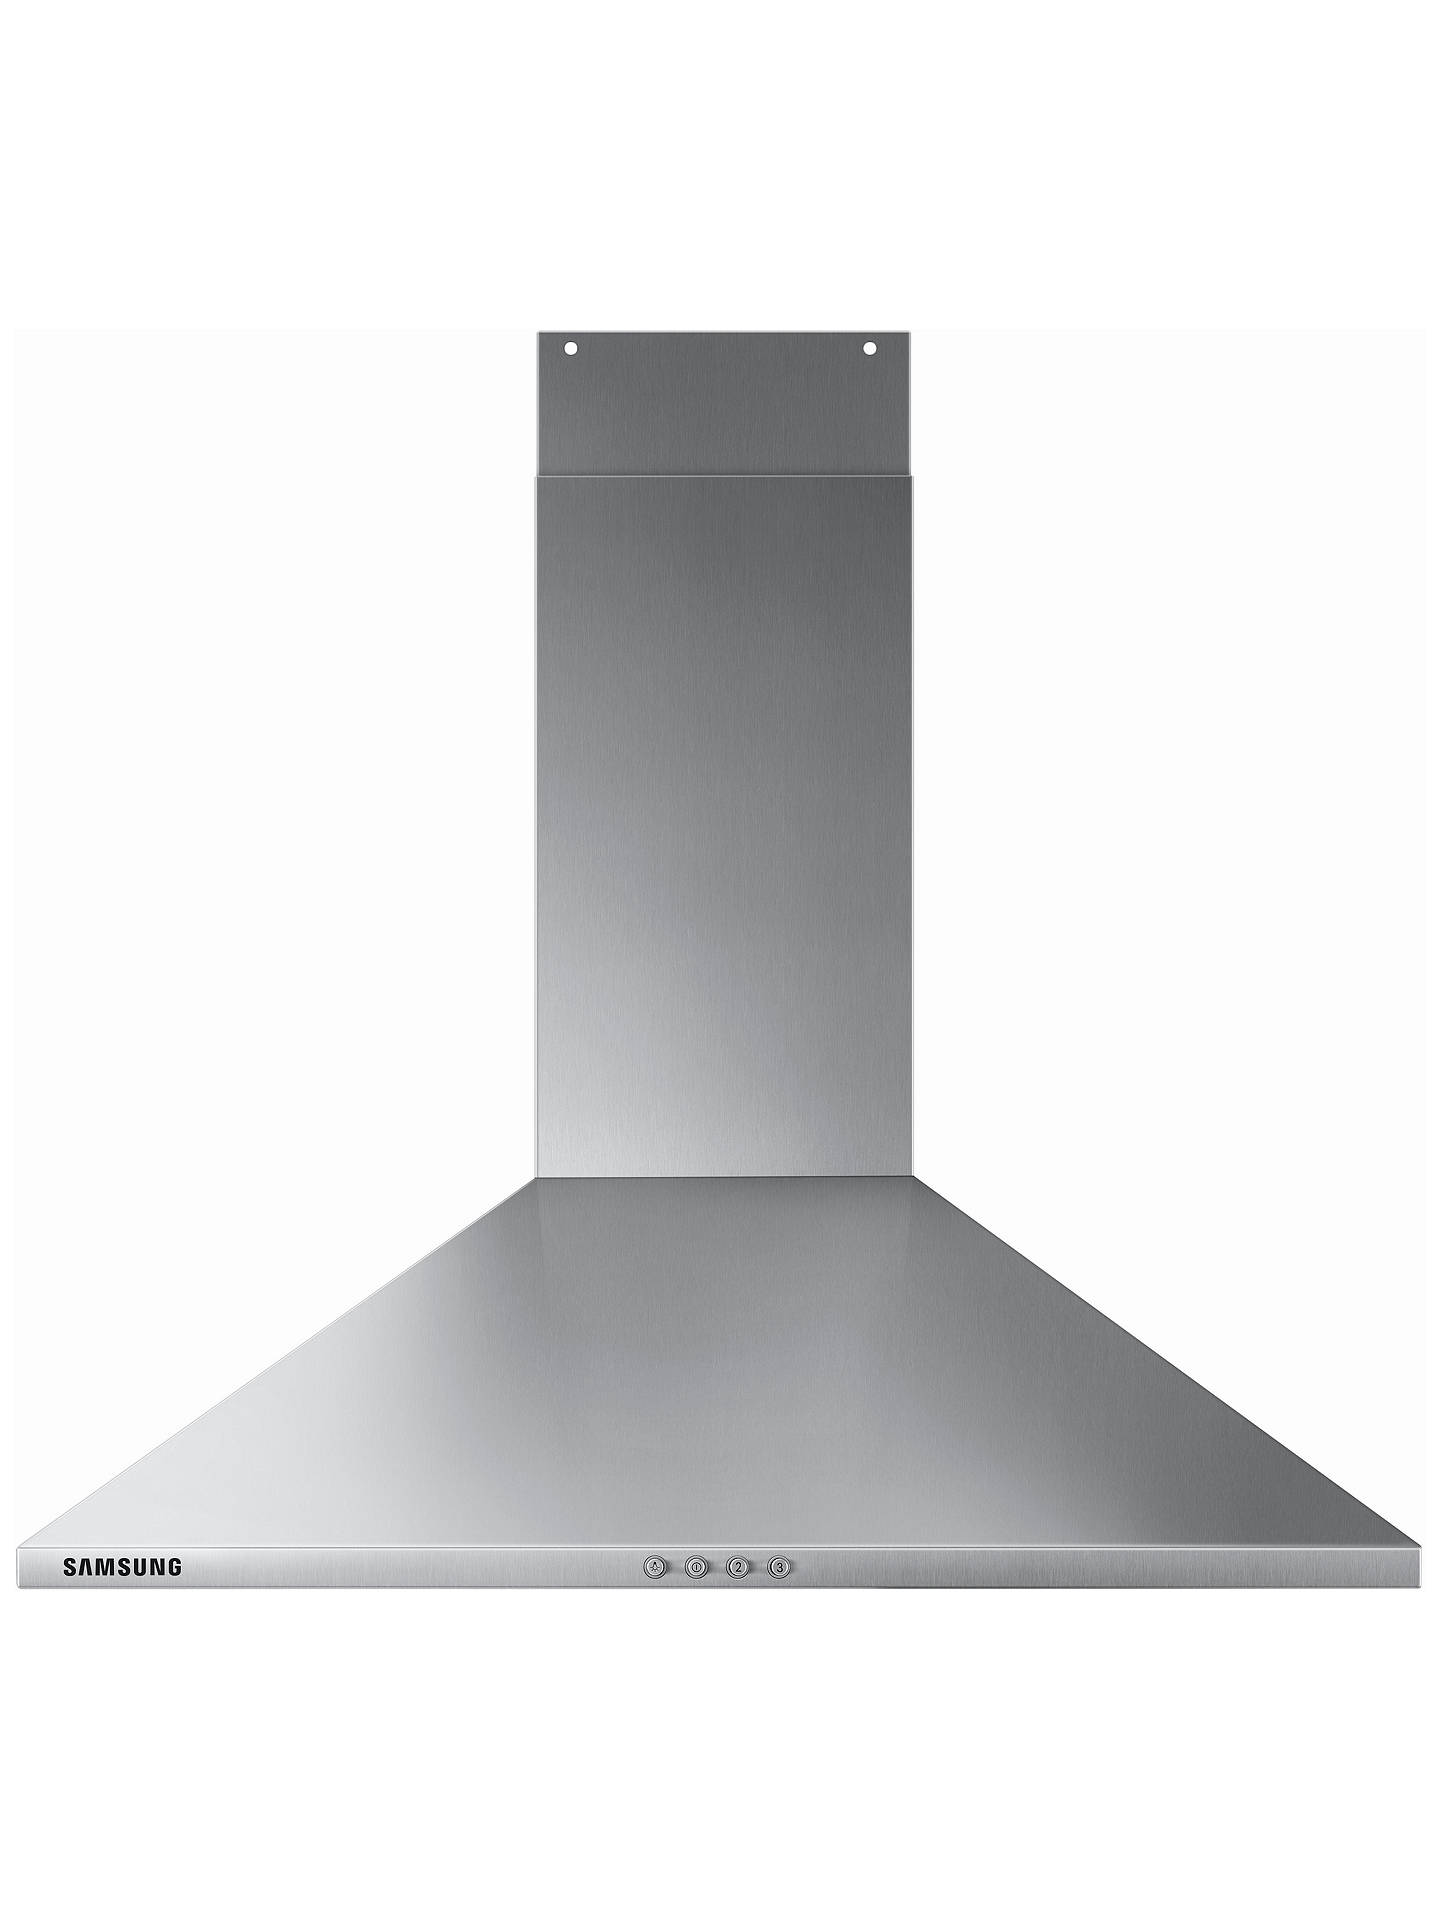 Buy Samsung NK24M3050PS/U1 Chimney Cooker Hood, 60cm Wide, Stainless Steel Online at johnlewis.com